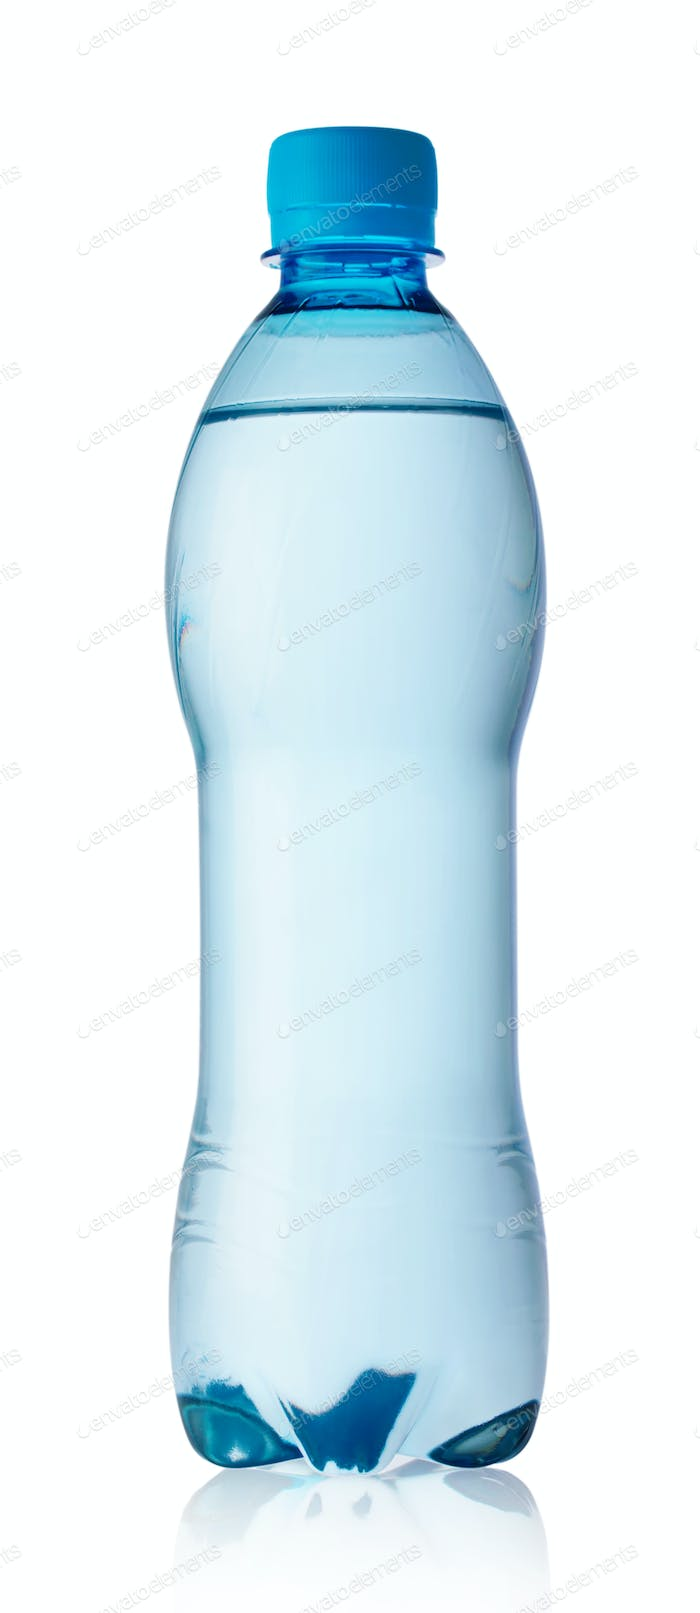 Bottle of mineral water